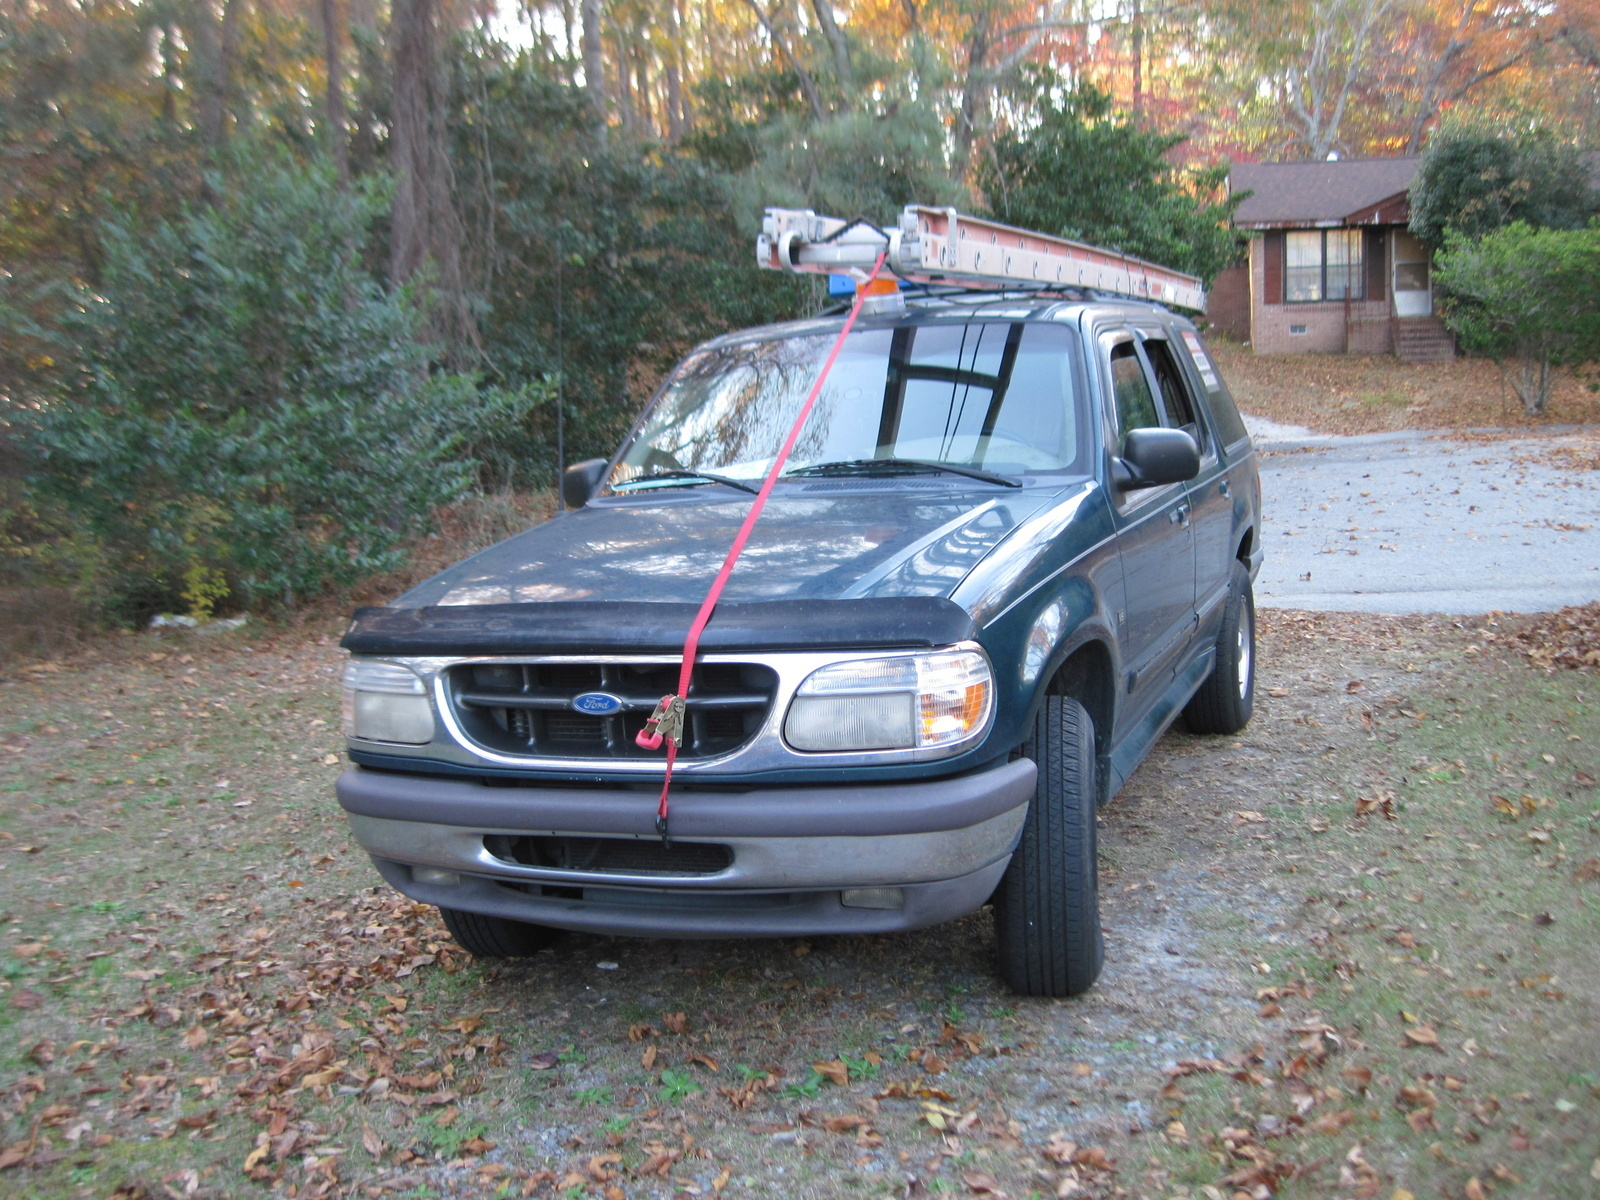 Ford explorer questions 1997 ford explorer when i turn on just the parking lights the headlig cargurus